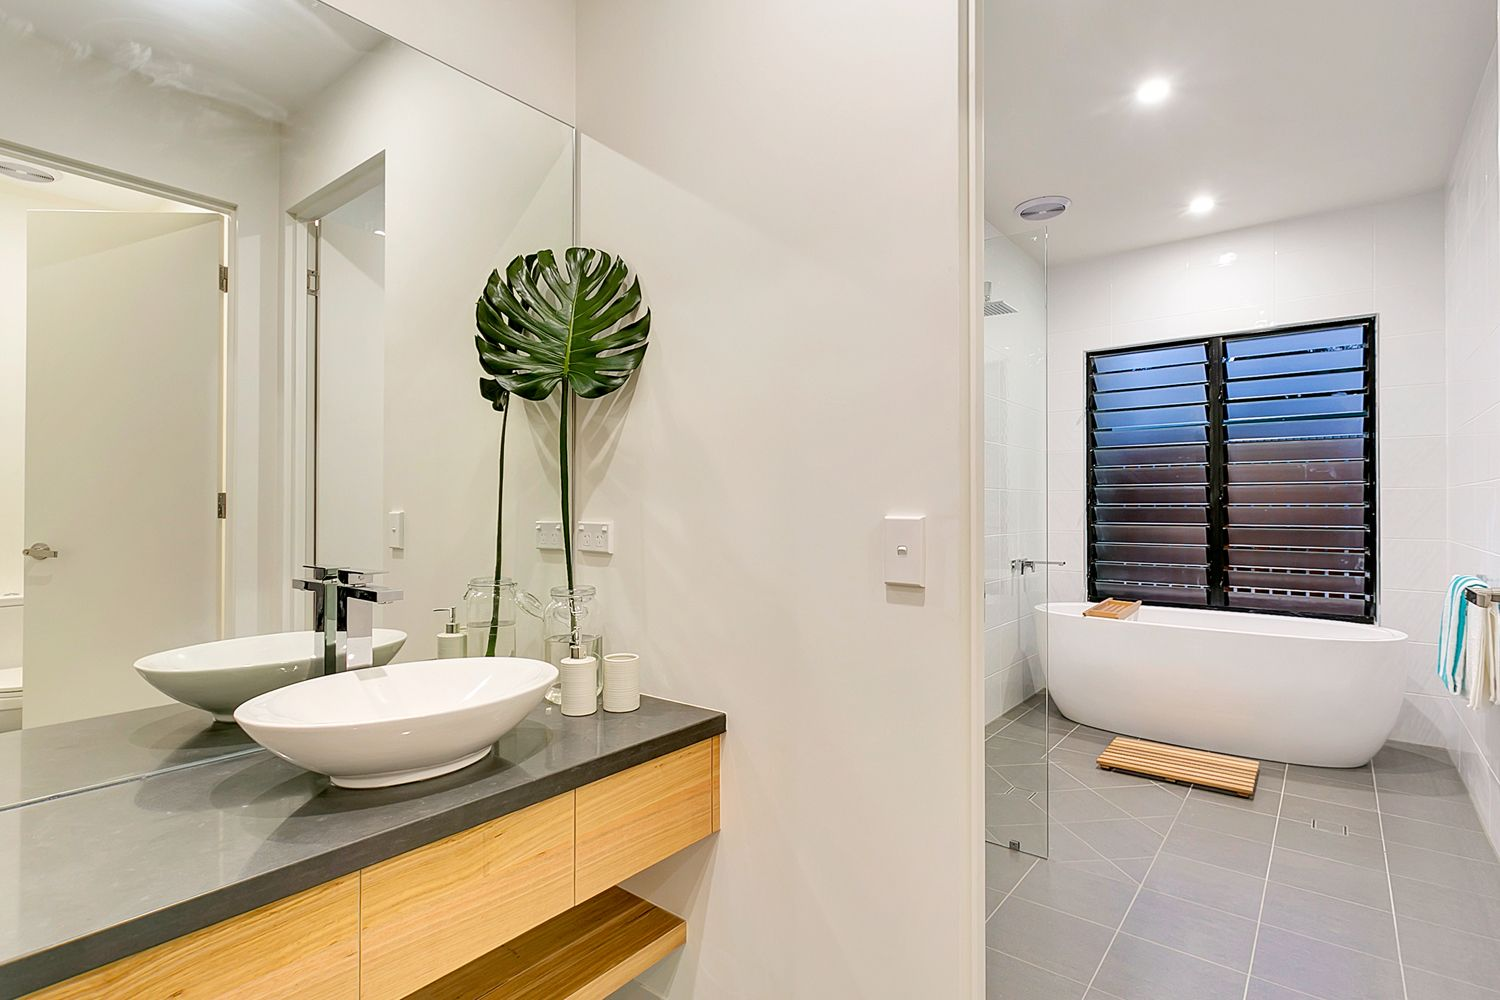 Modern Australian Bathroom Renovation Modern Bathroom Renovations Modern Bathroom Simple Bathroom Remodel